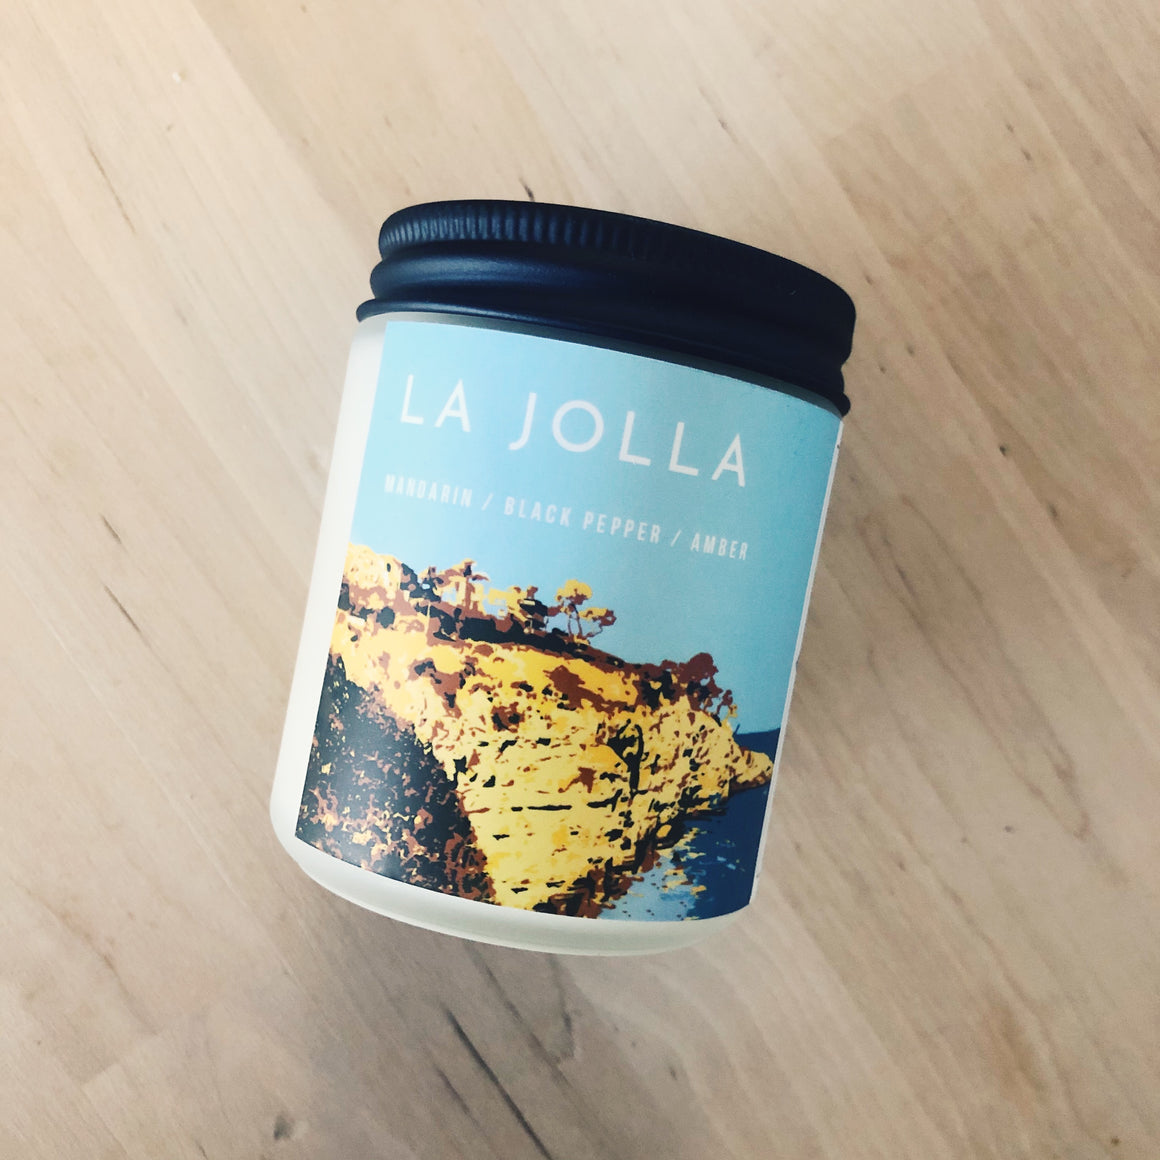 La Jolla Vegan Scented Soy Candle